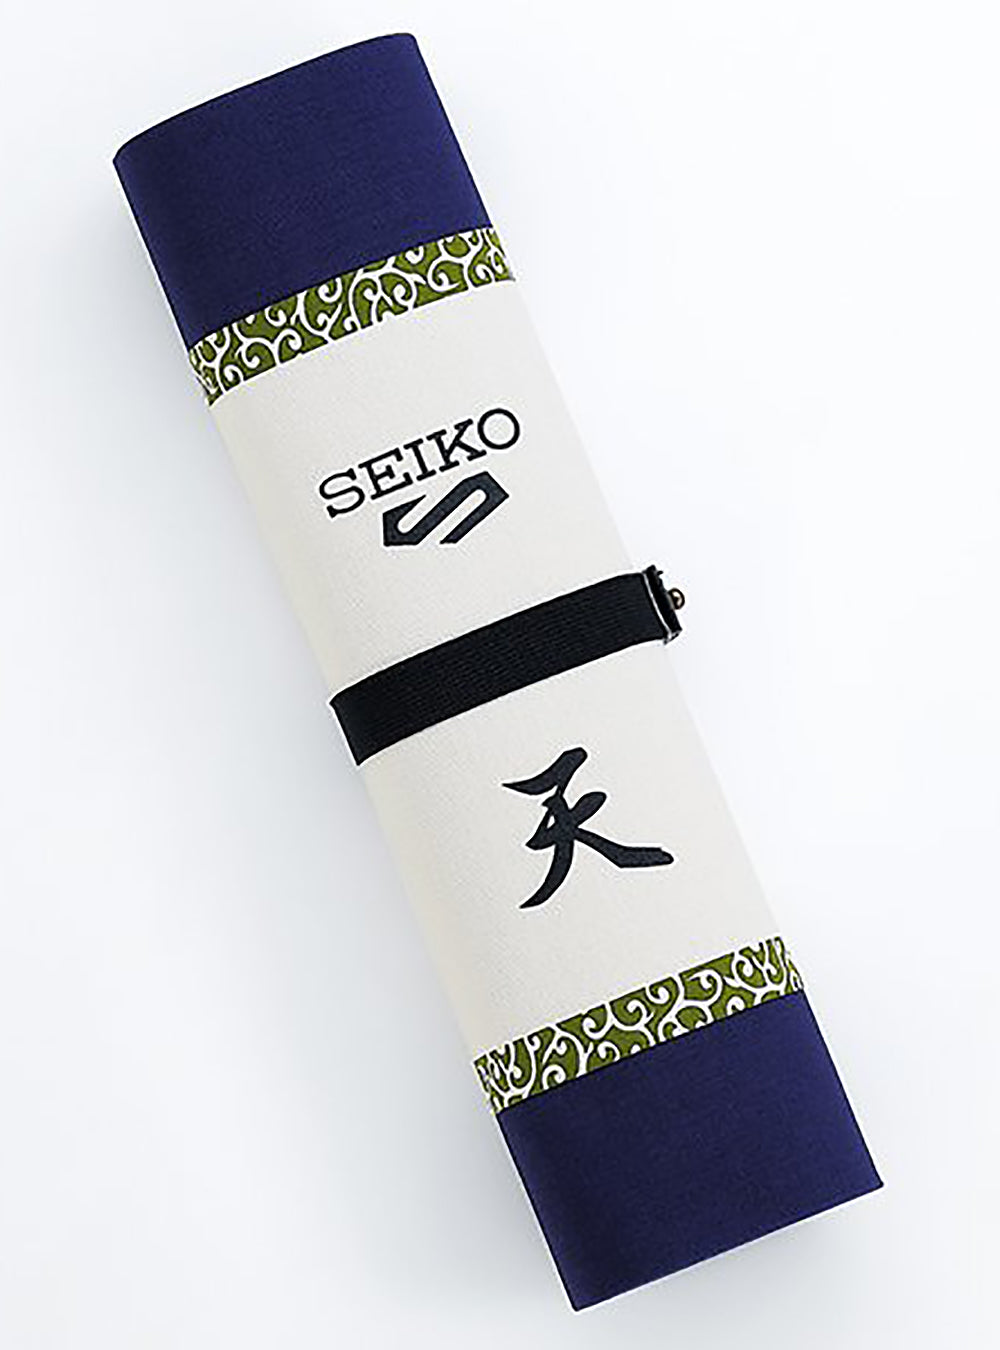 SEIKO 5 SPORTS NARUTO & BORUTO LIMITED EDITION ROCK LEE MODEL SBSA095 MADE IN JAPAN JDM